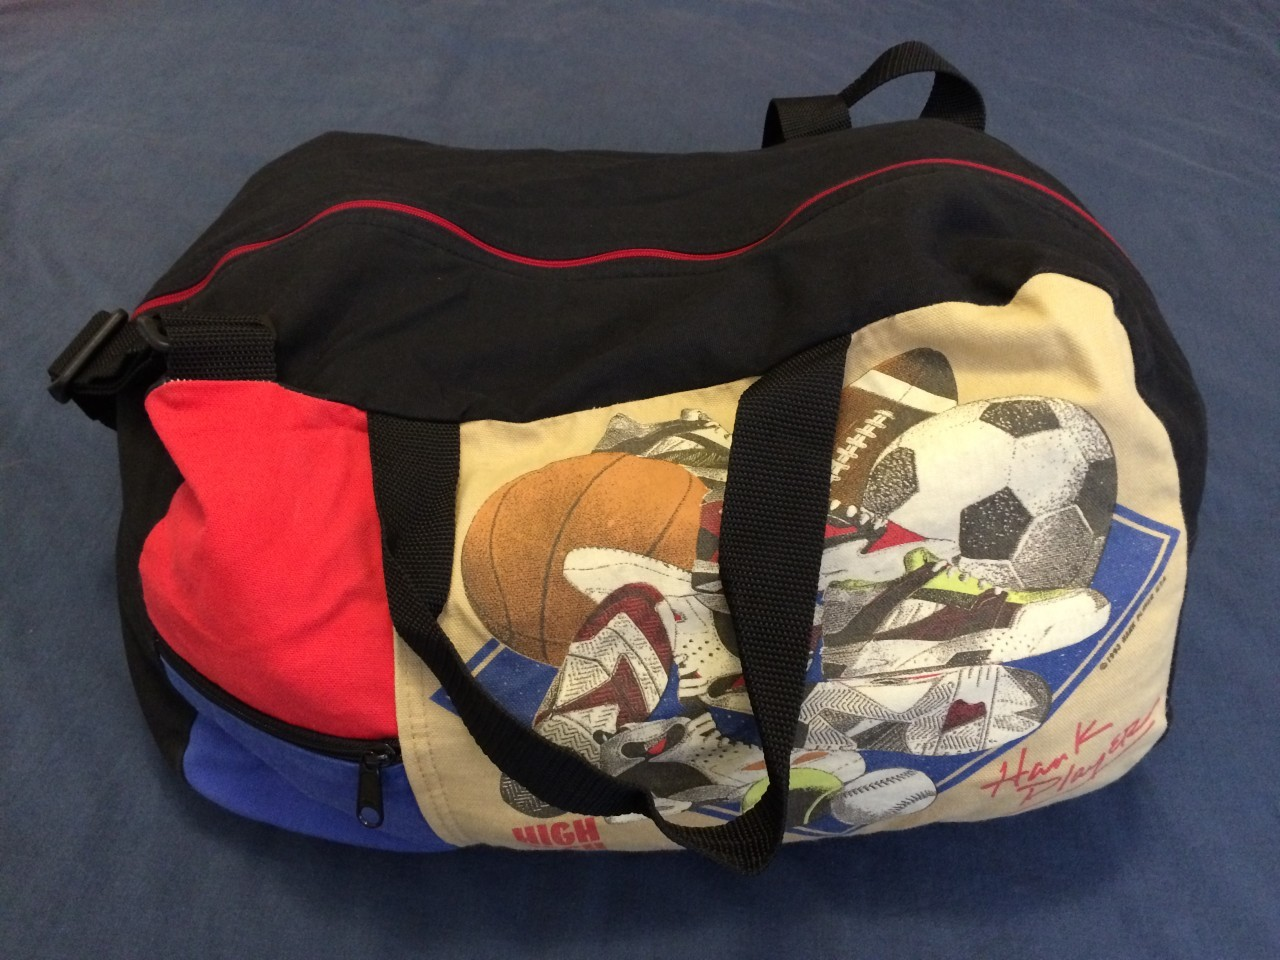 Beat up old duffel bag